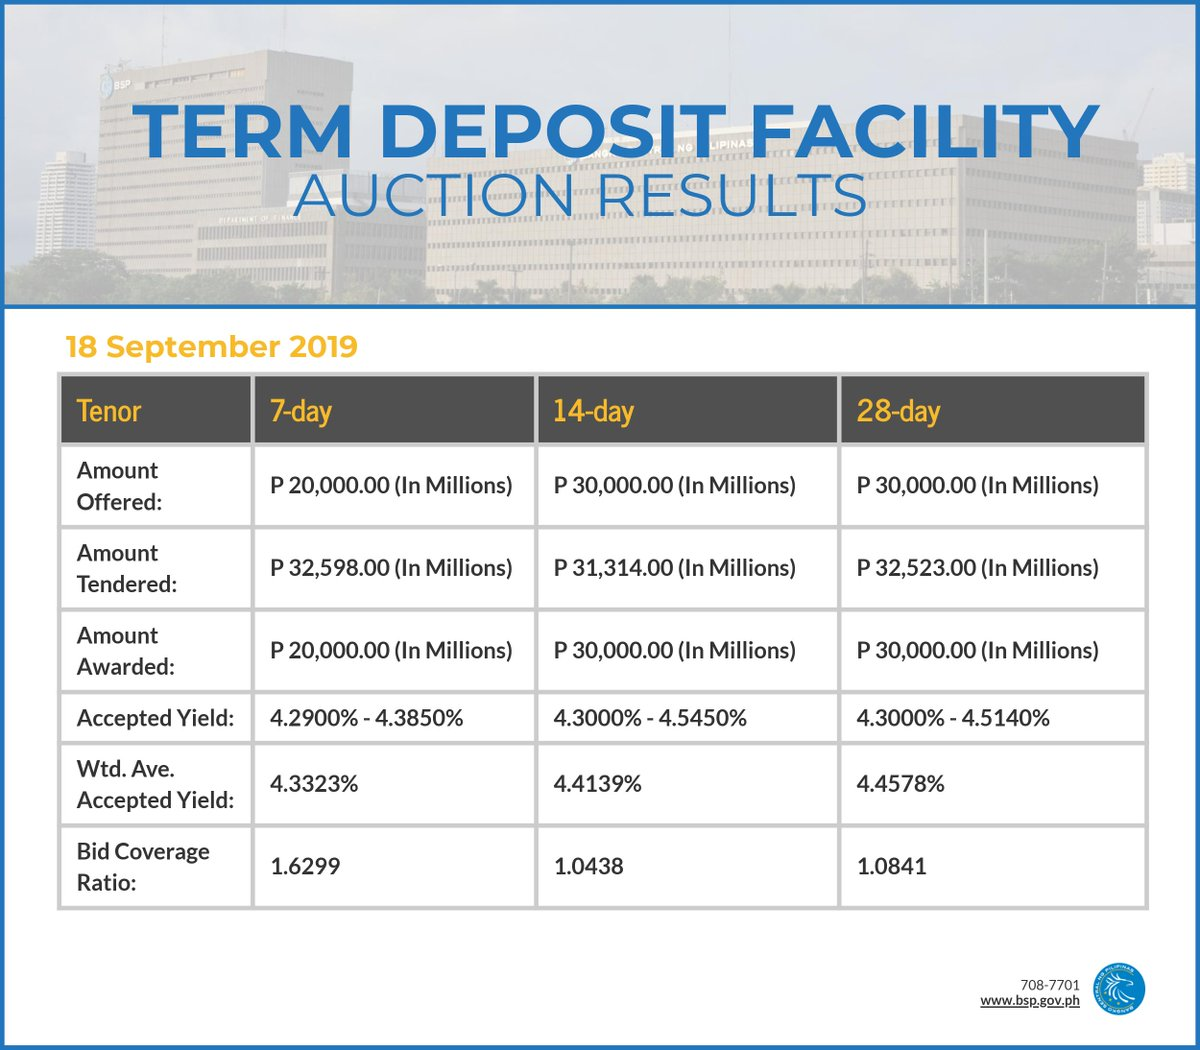 test Twitter Media - TDF Auction Results 18 Sep 2019  7-day: https://t.co/elTDRaOGoG 14-day: https://t.co/jEpqfzSzxo 28-day: https://t.co/Hsl06M4pex https://t.co/j4nanRXIs0